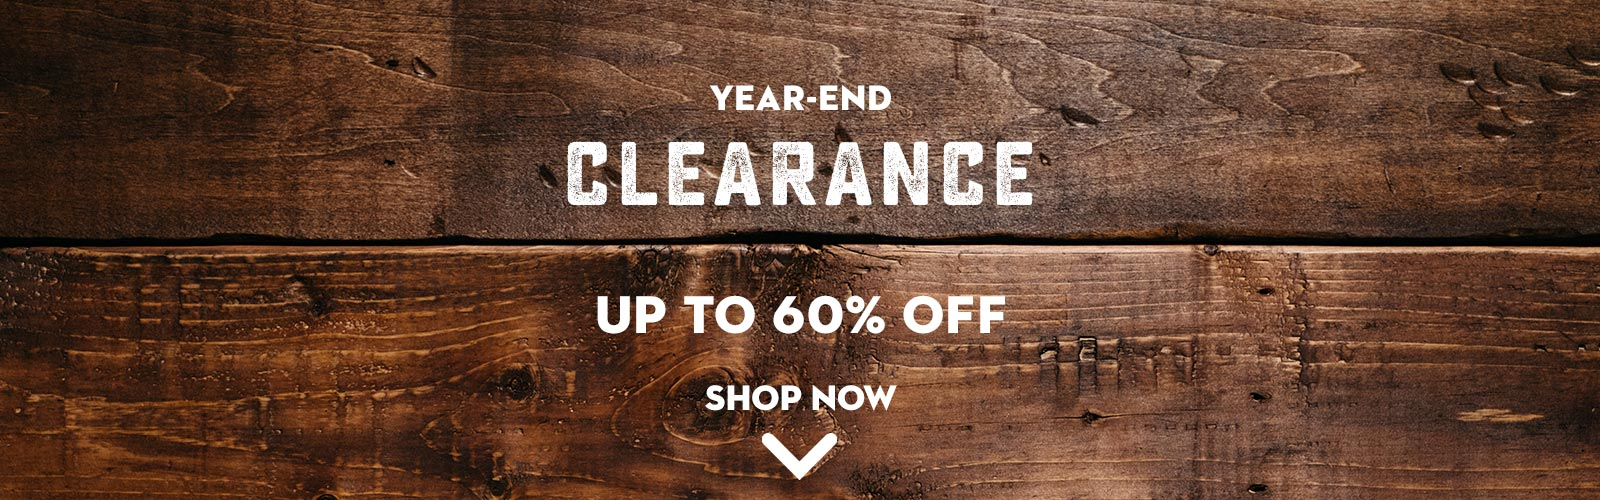 Year-End Clearance on WildBounds